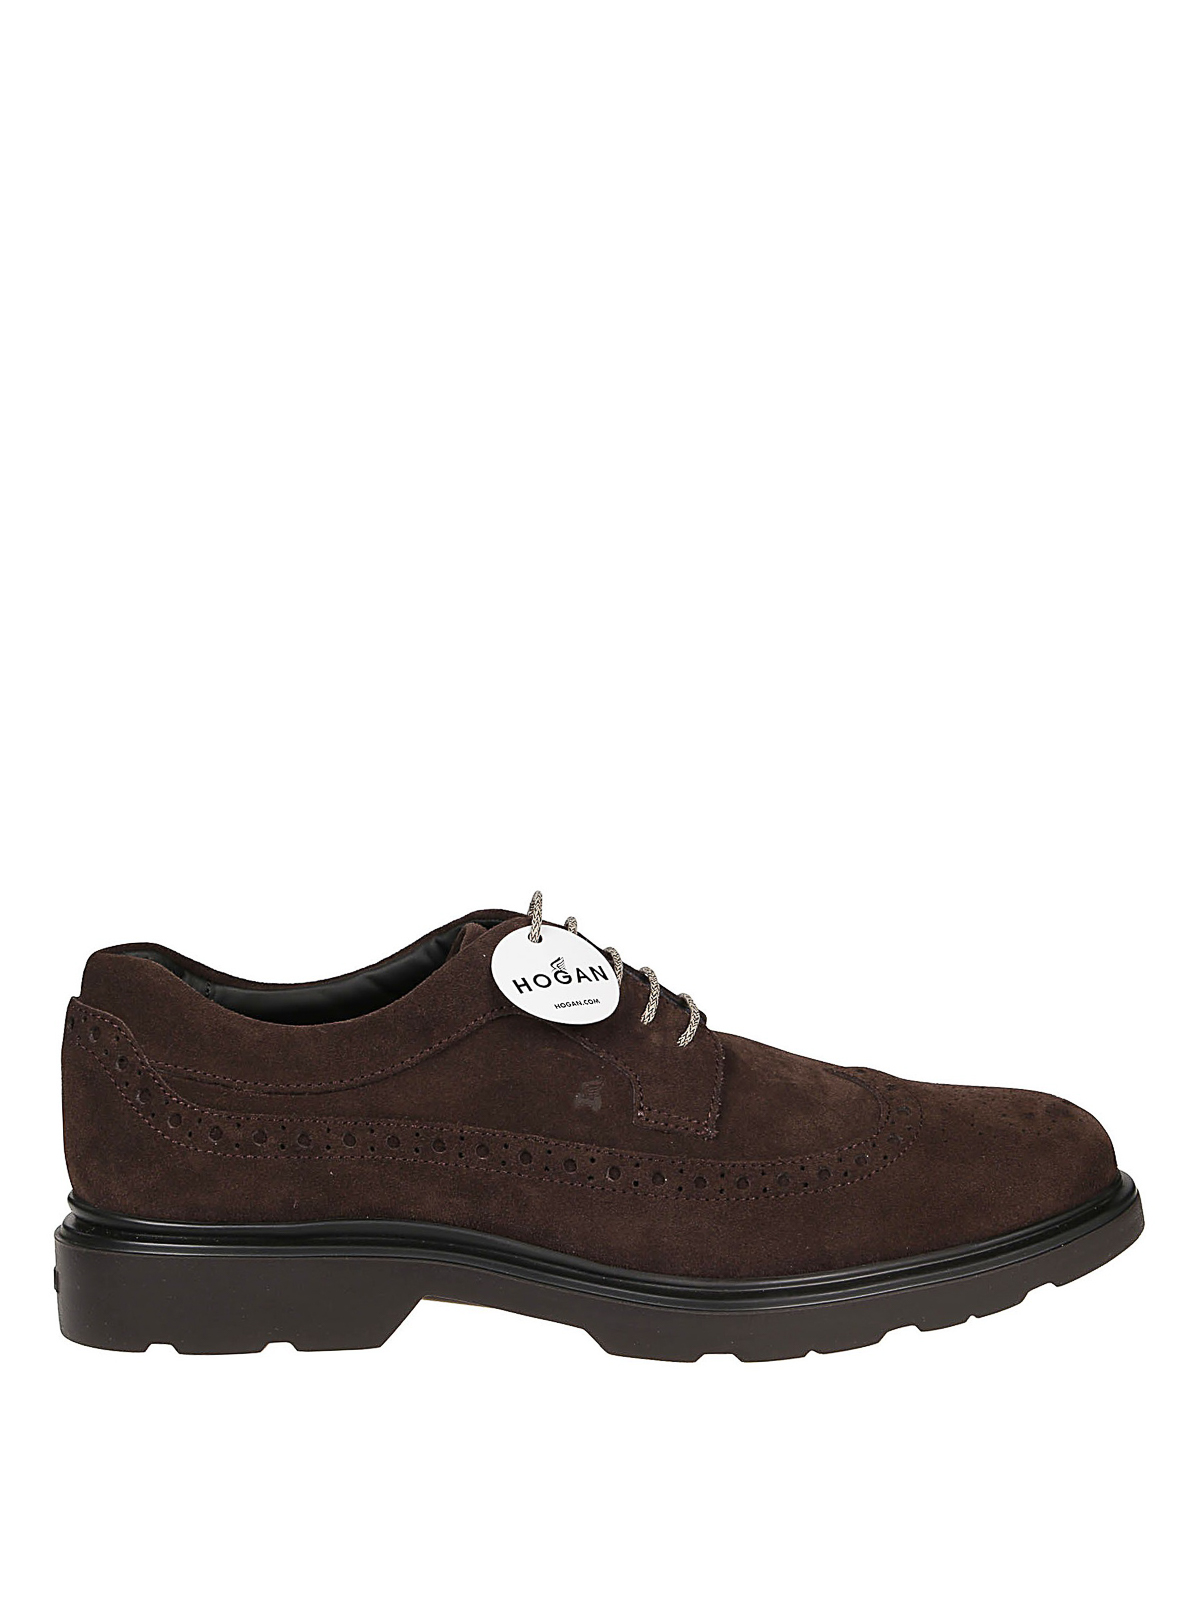 Hogan ROUTE H393 SUEDE DERBY BROGUES